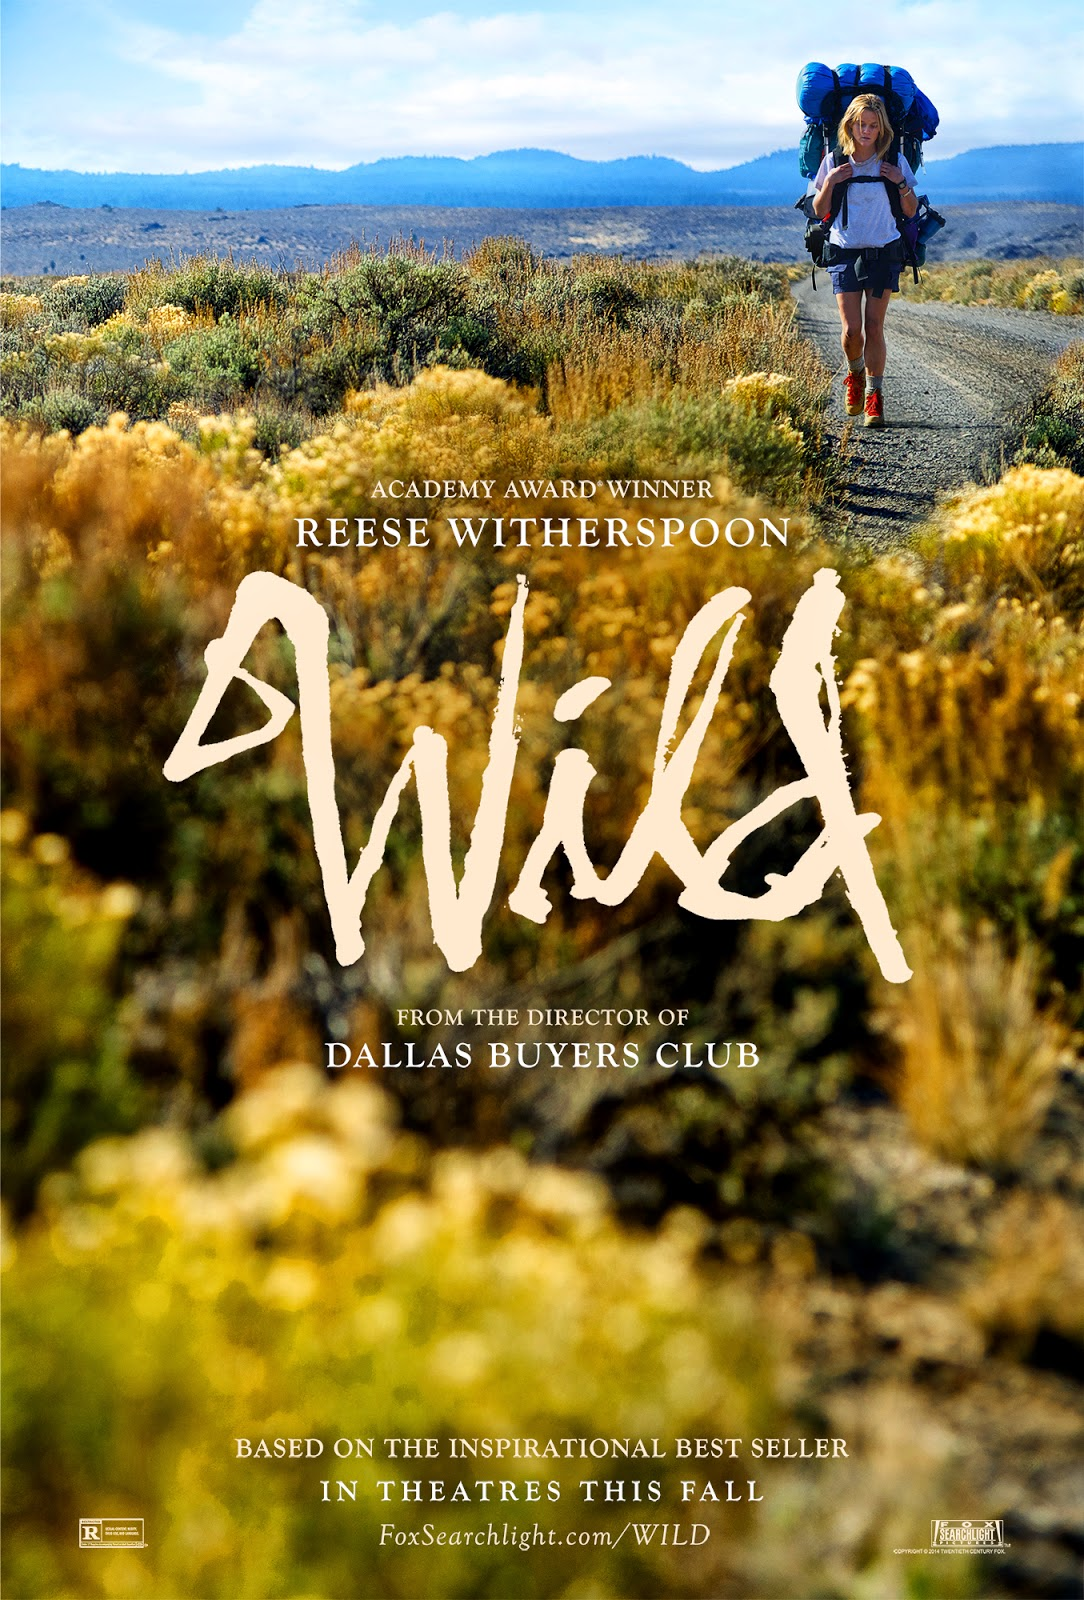 reese witherspoon wild poster 2015 film